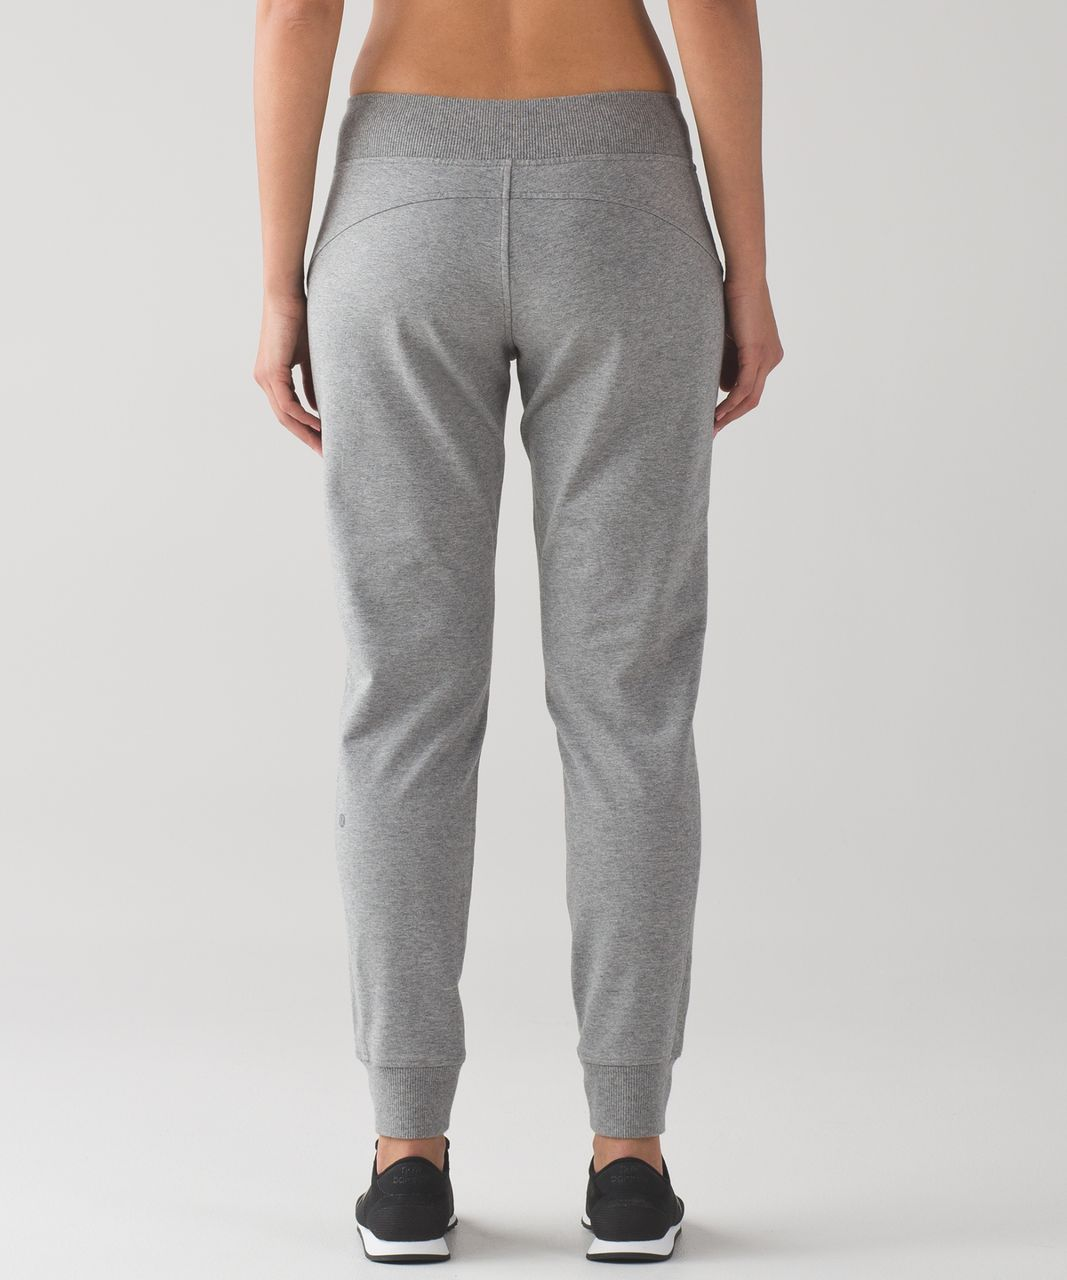 Lululemon Fleece Please Jogger (Terry) - Heathered Medium Grey